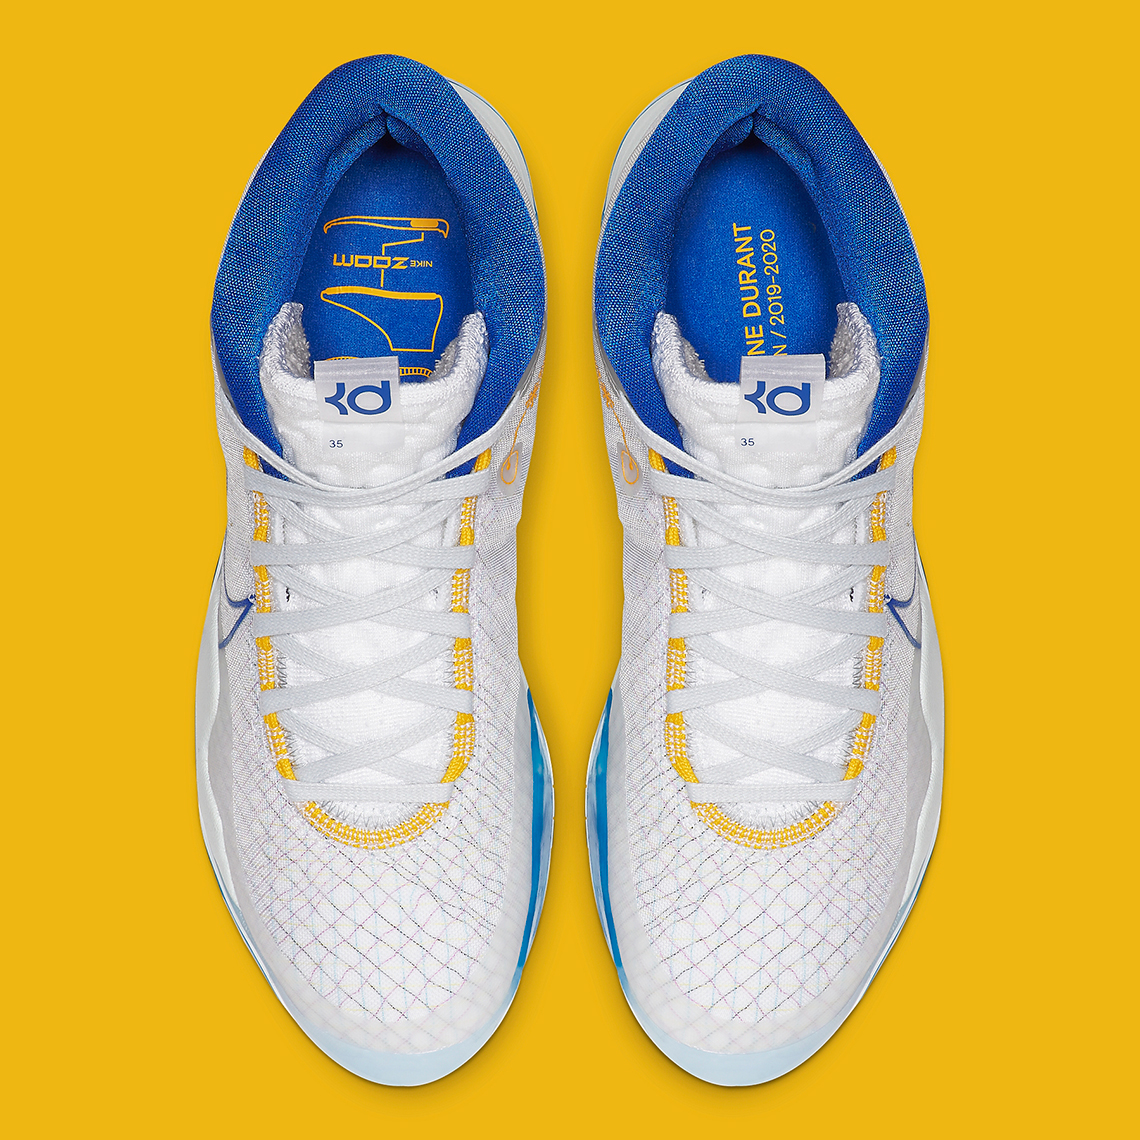 """online store 4ff1d 7f12e The Nike KD 12 Appears In A """"Dub Nation"""" Colorway As ..."""